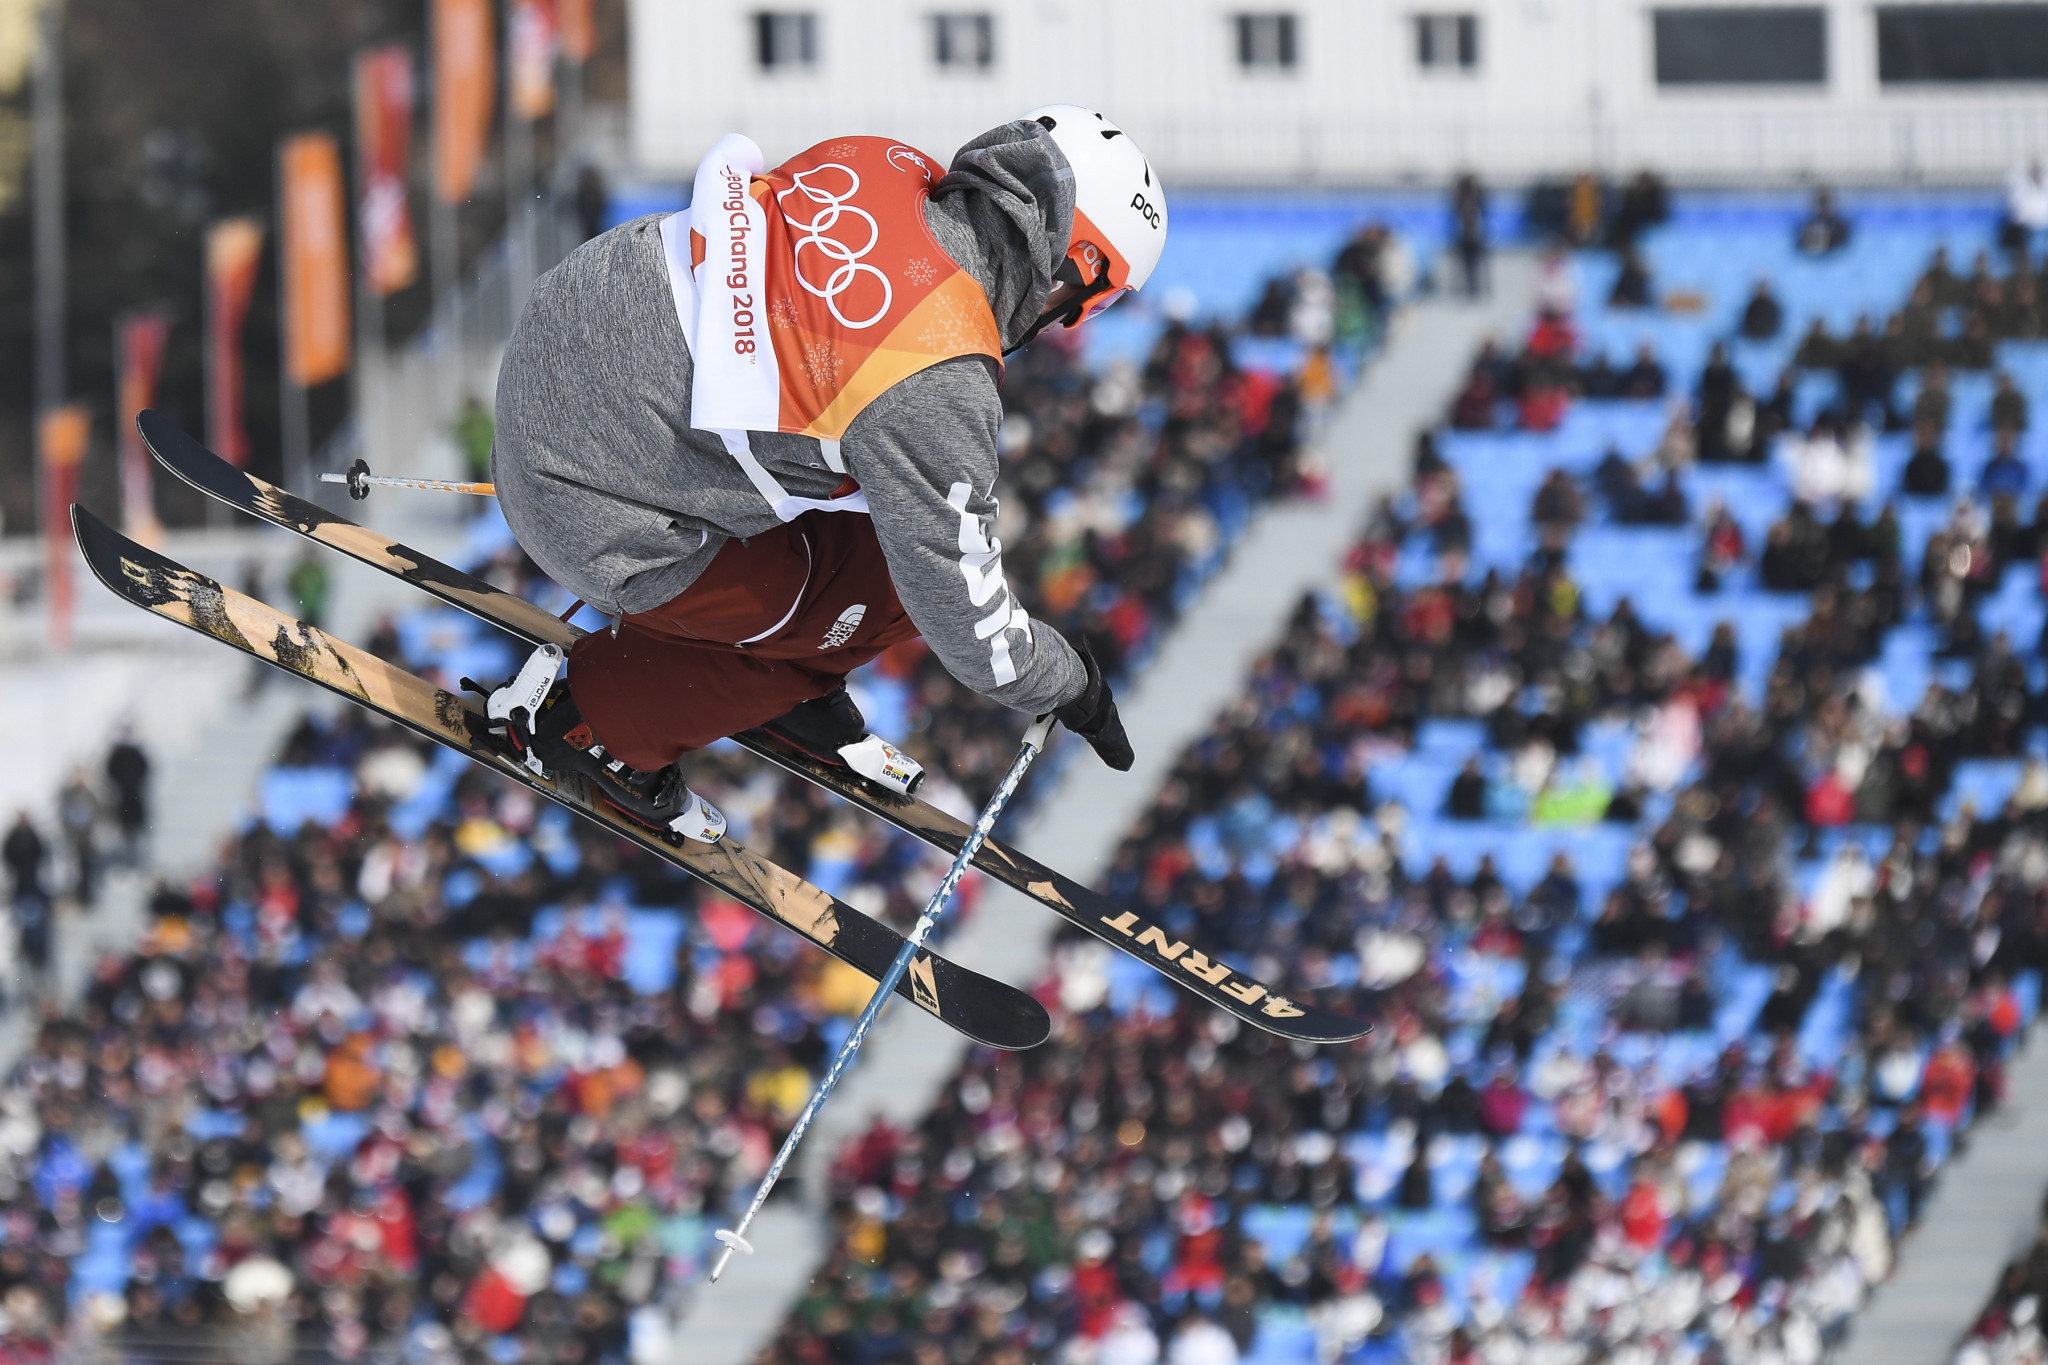 Alex Ferreira's third-run score of 96.40 points earned him the silver medal ©Getty Images